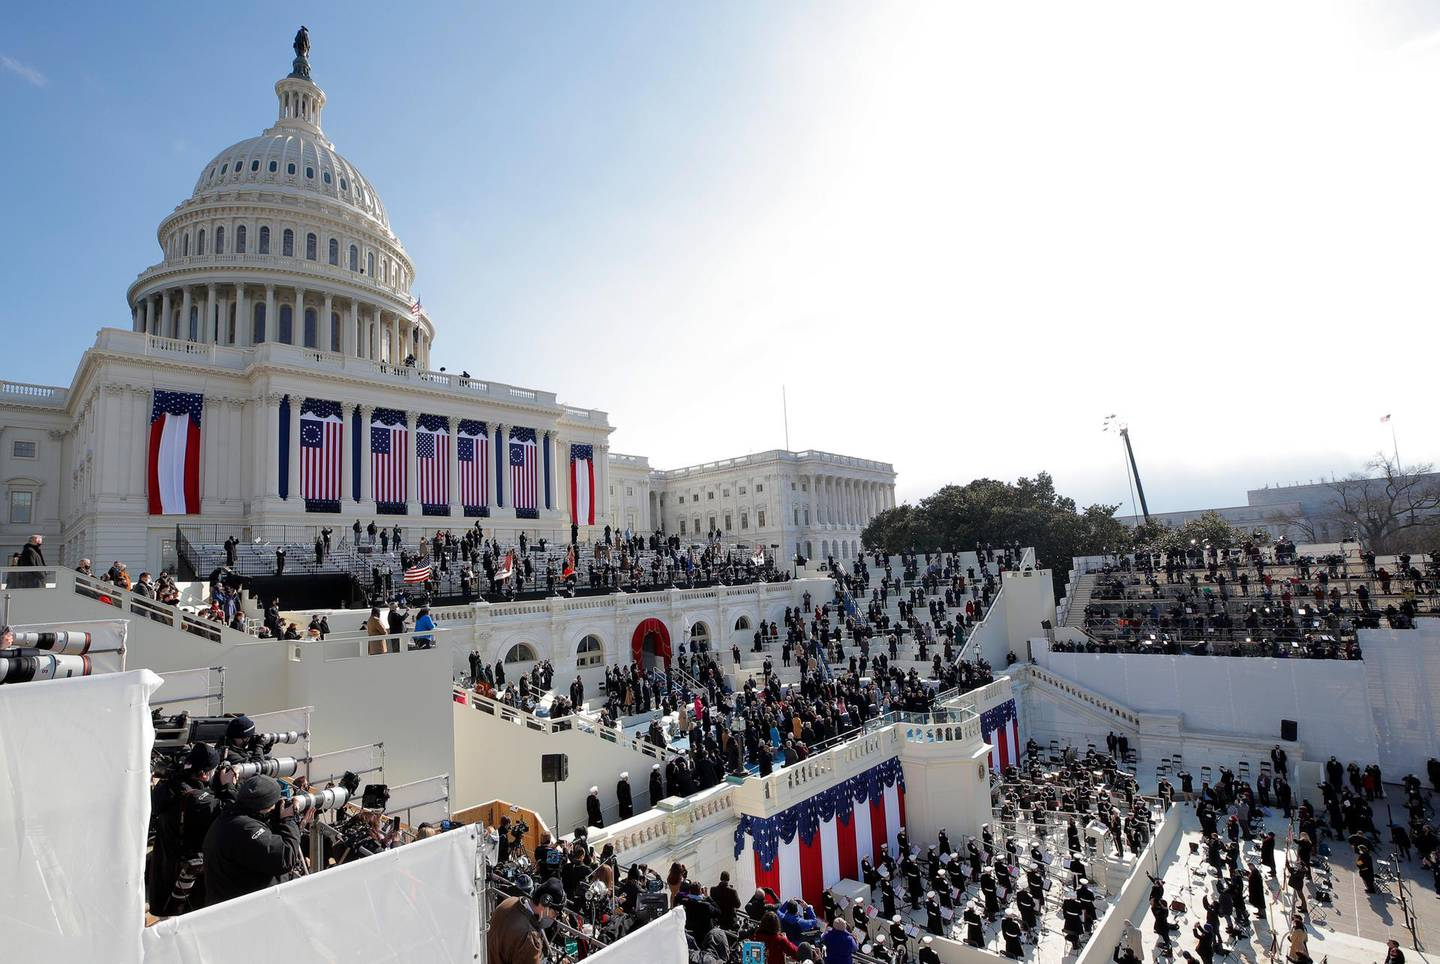 General view during the inauguration of Joe Biden as the 46th President of the United States on the West Front of the U.S. Capitol in Washington, U.S., January 20, 2021. REUTERS/Brendan McDermid